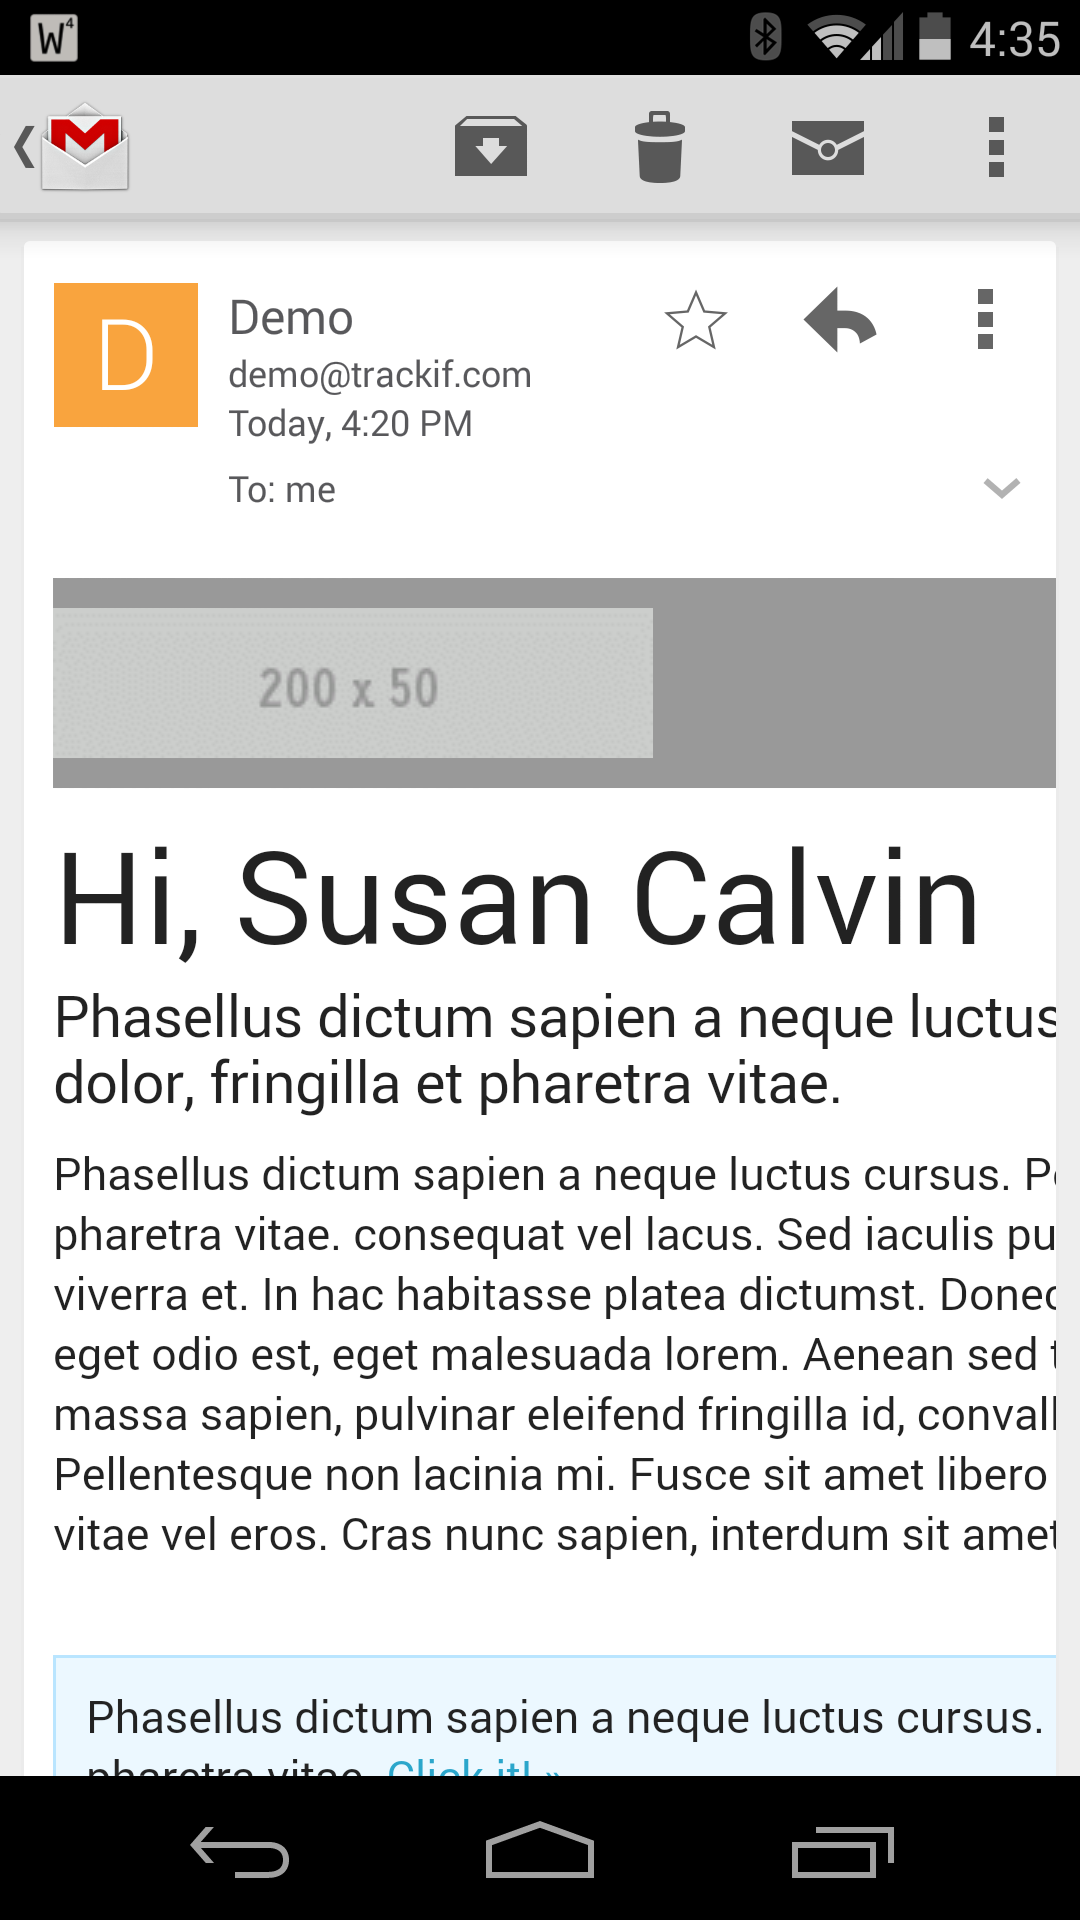 Ink boilerplate causes side-to-side scrolling in Gmail app · Issue ...